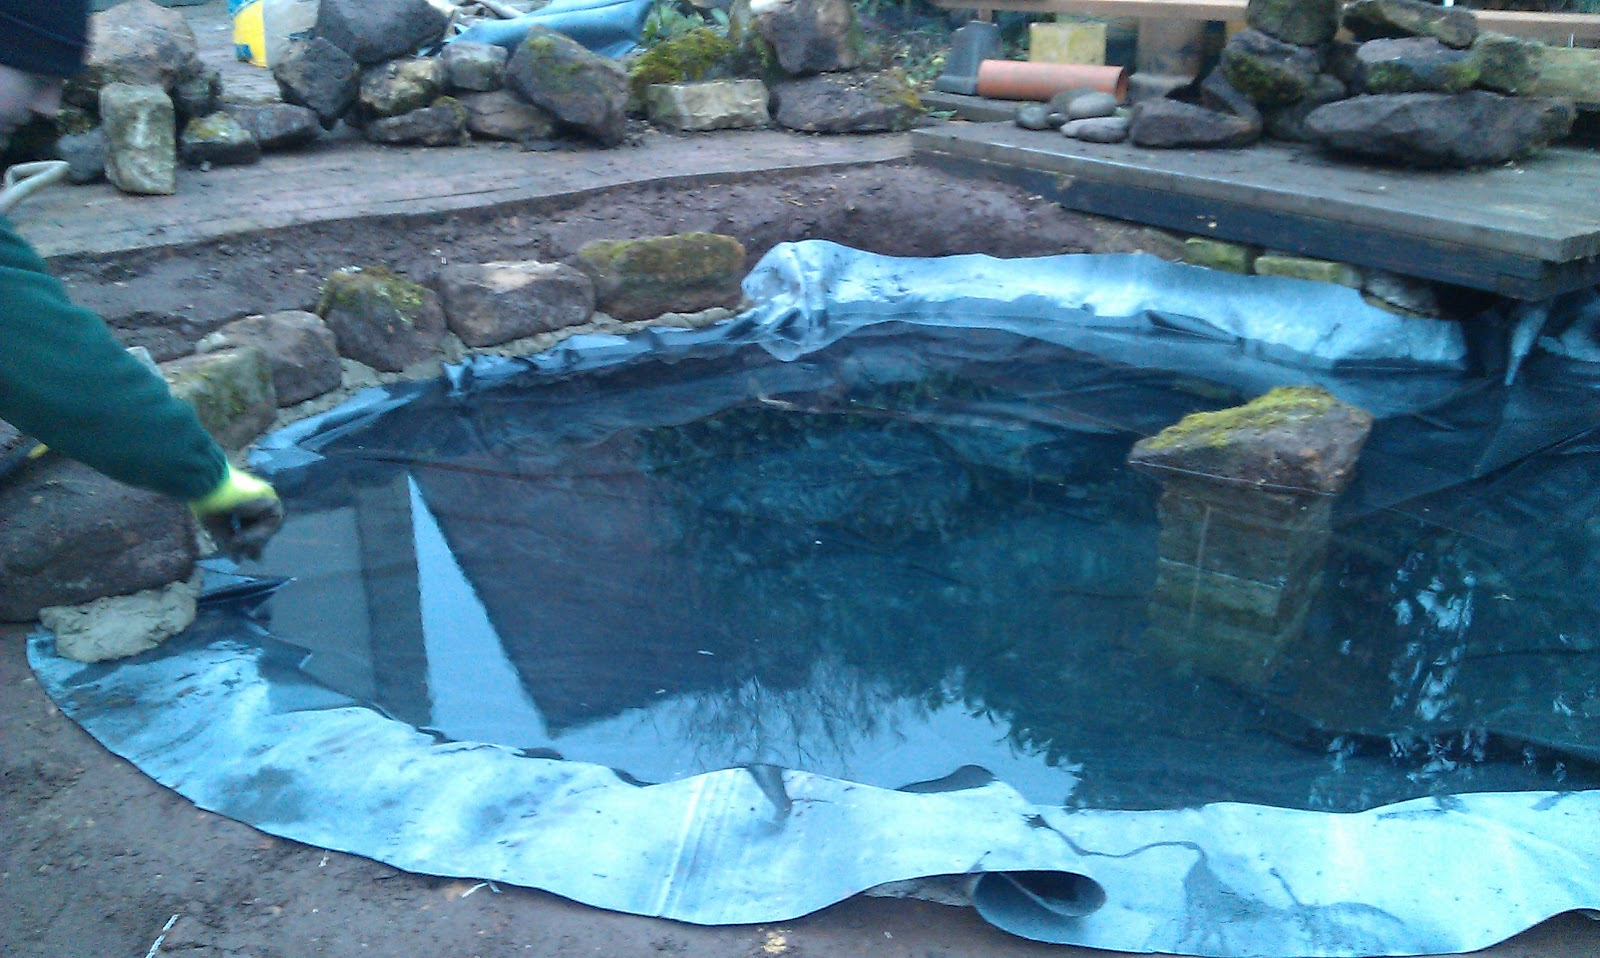 Chase gardening and landscaping re positioning a pond for Pond fish wanted